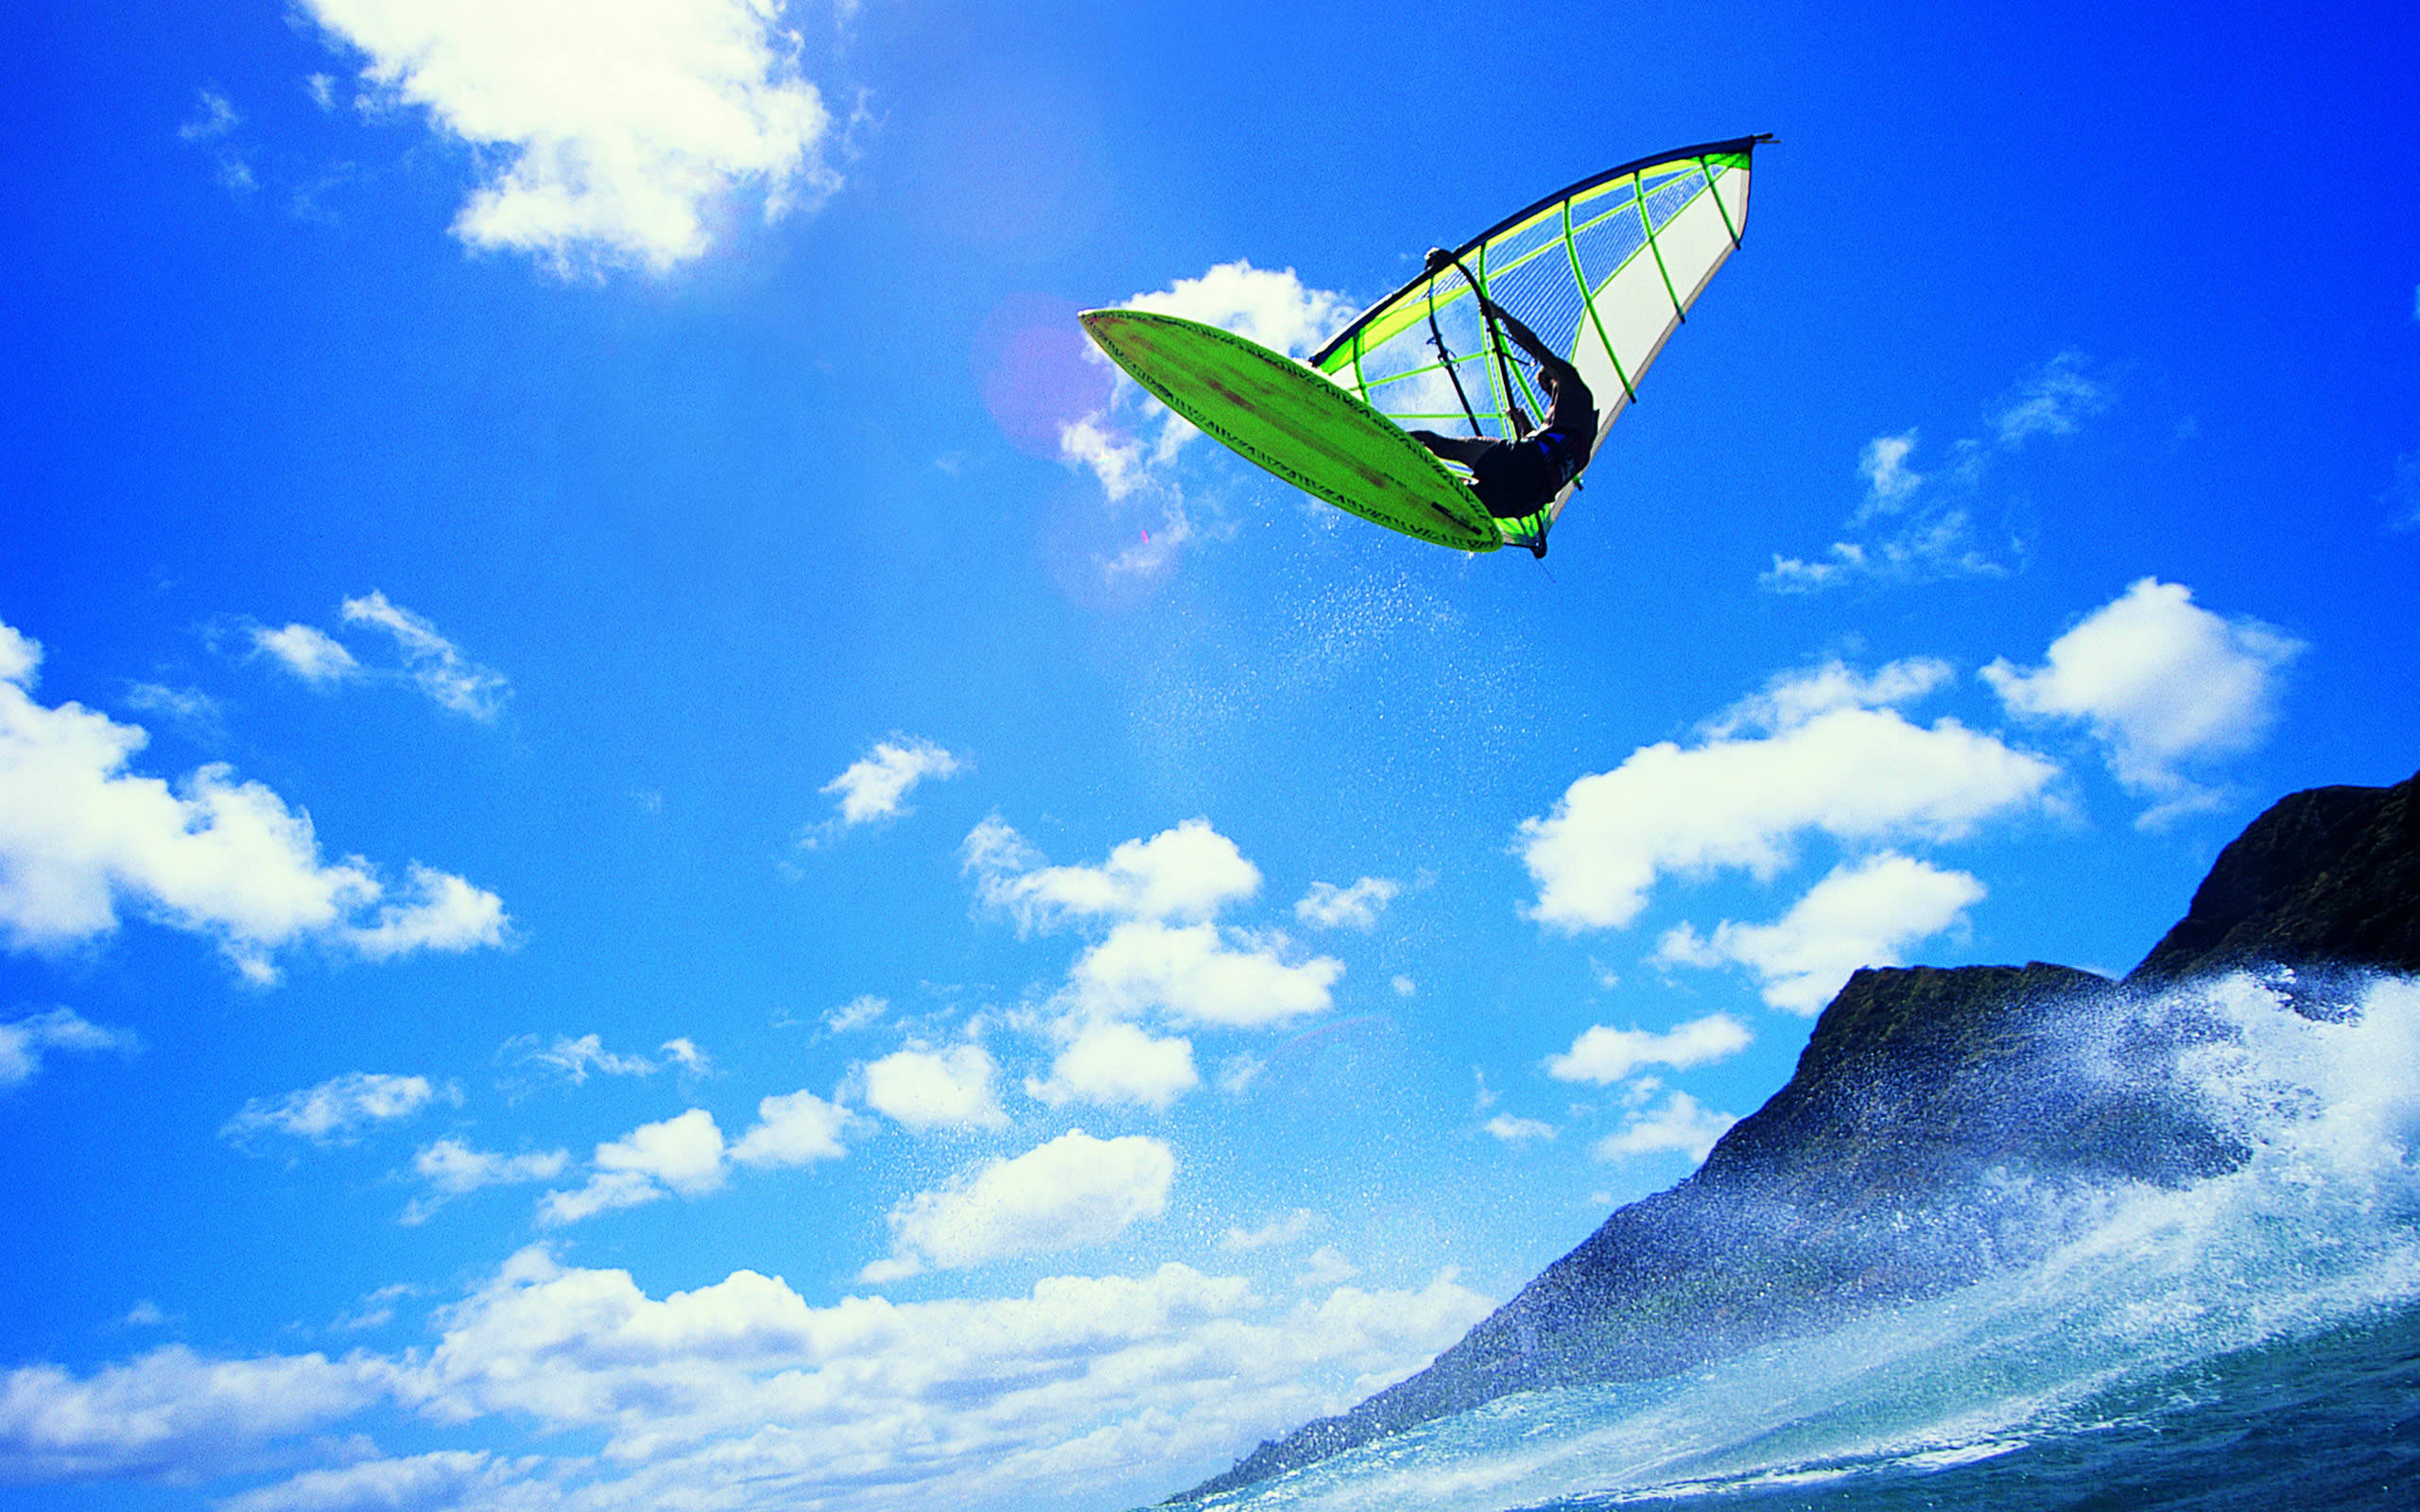 Windsurf Disegno: Wind Surf Picture 2560x1600